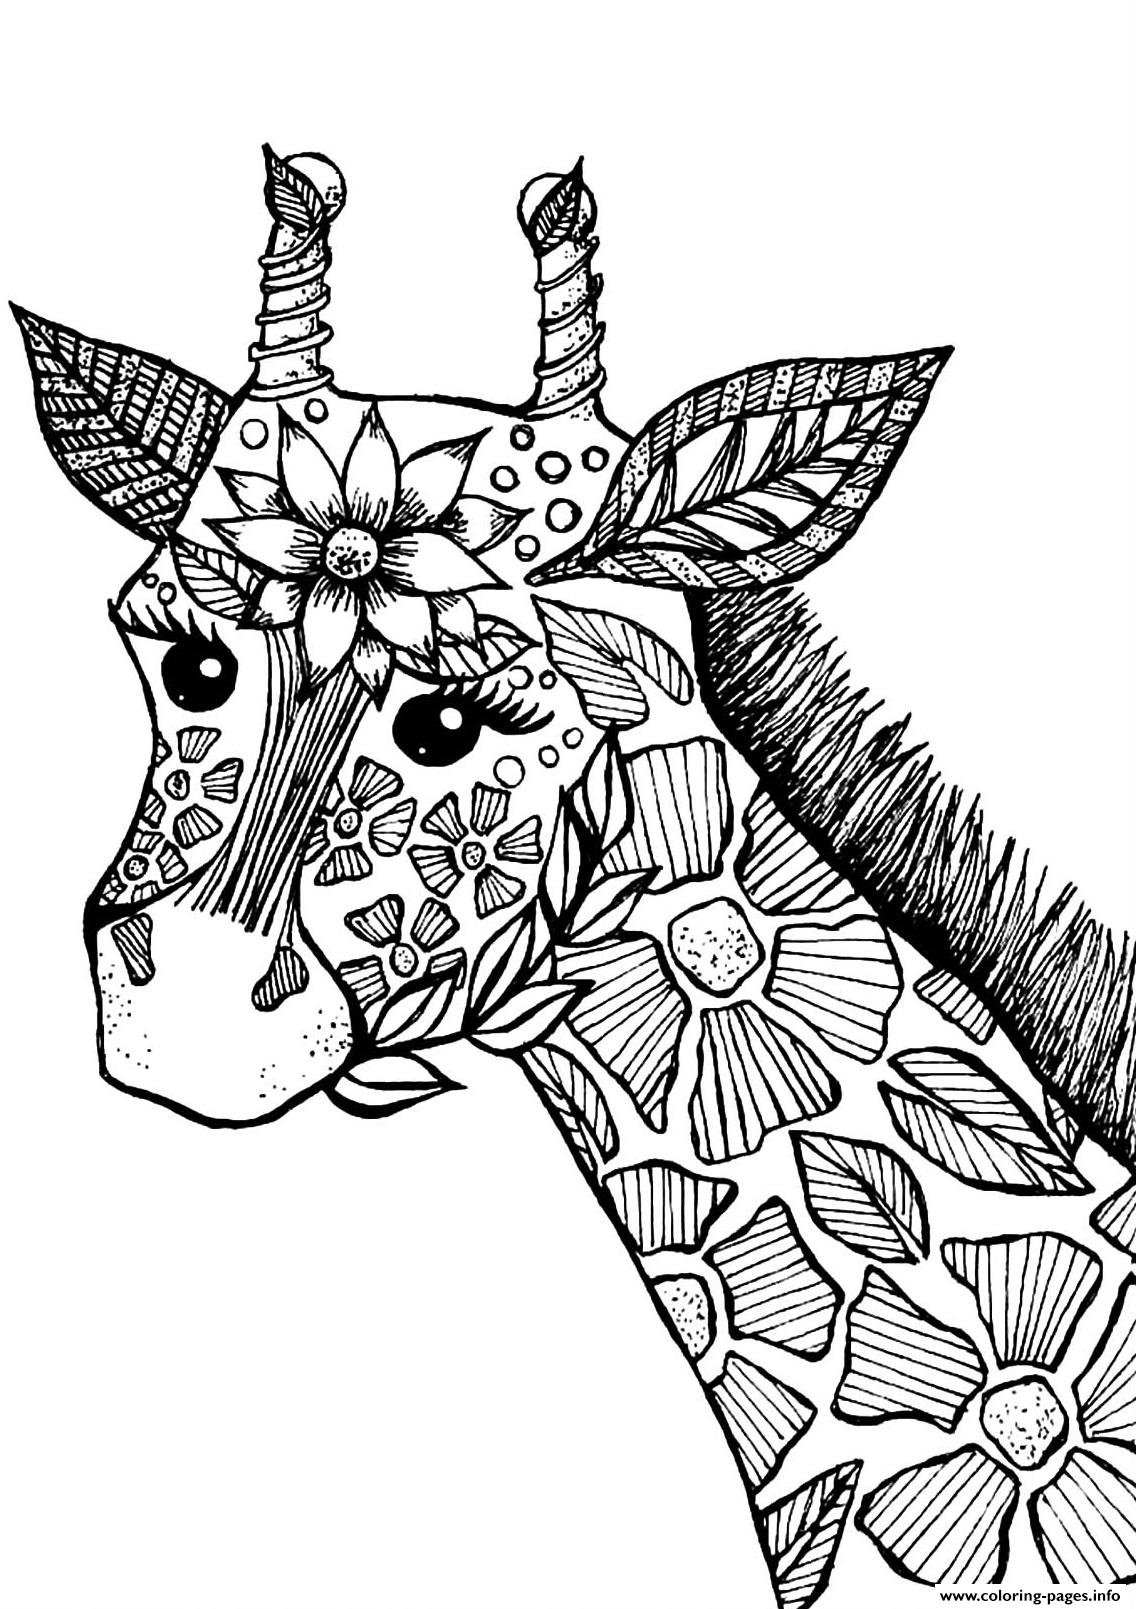 The Stains Of This Giraffe Have Been Drawn Like Flowers ...